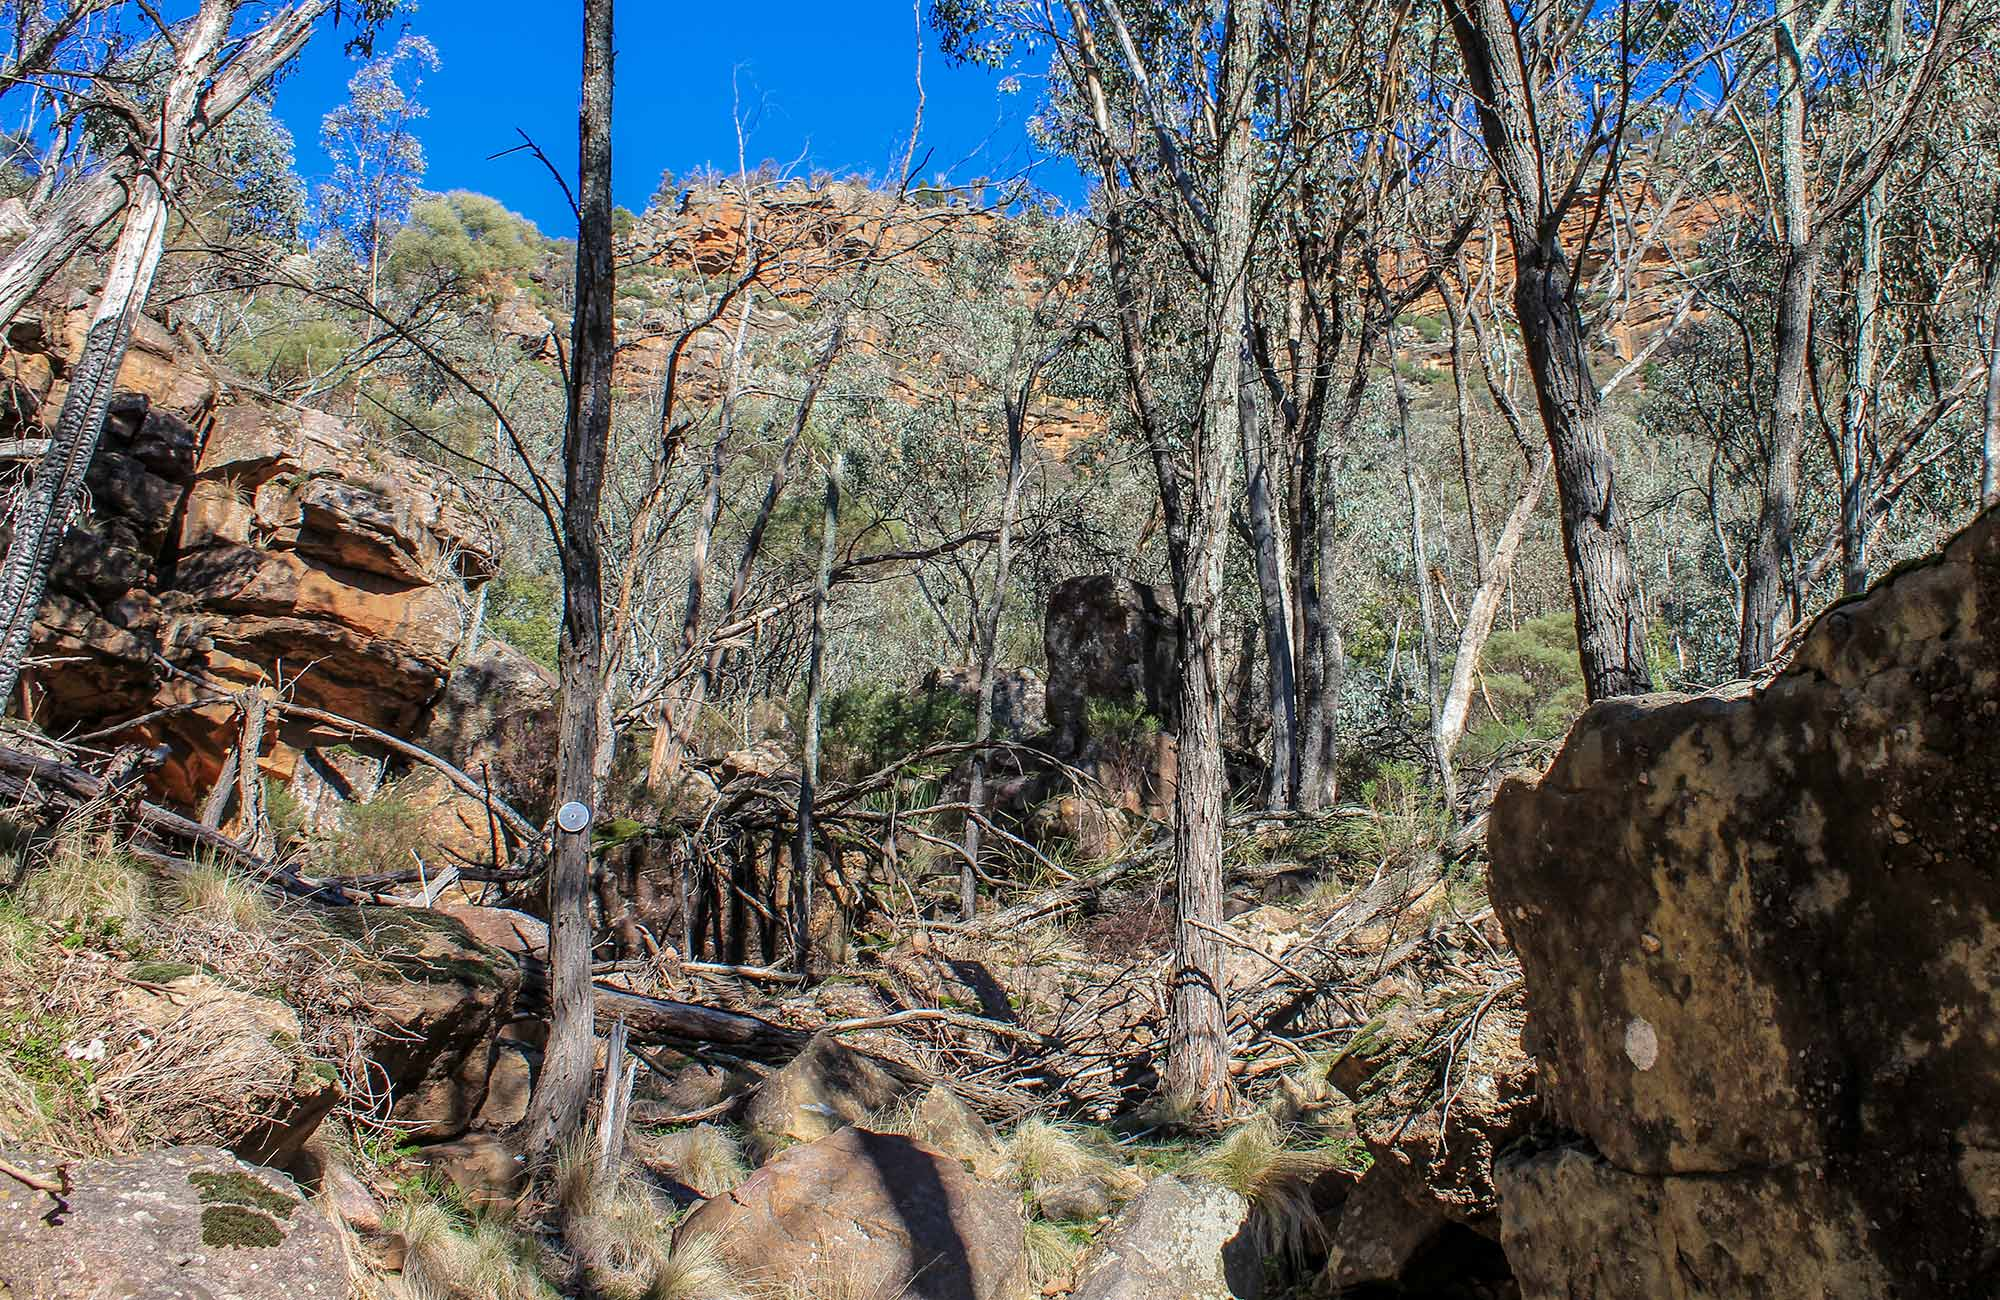 Eualdrie walking track, Weddin Mountains National Park. Photo: C Davis